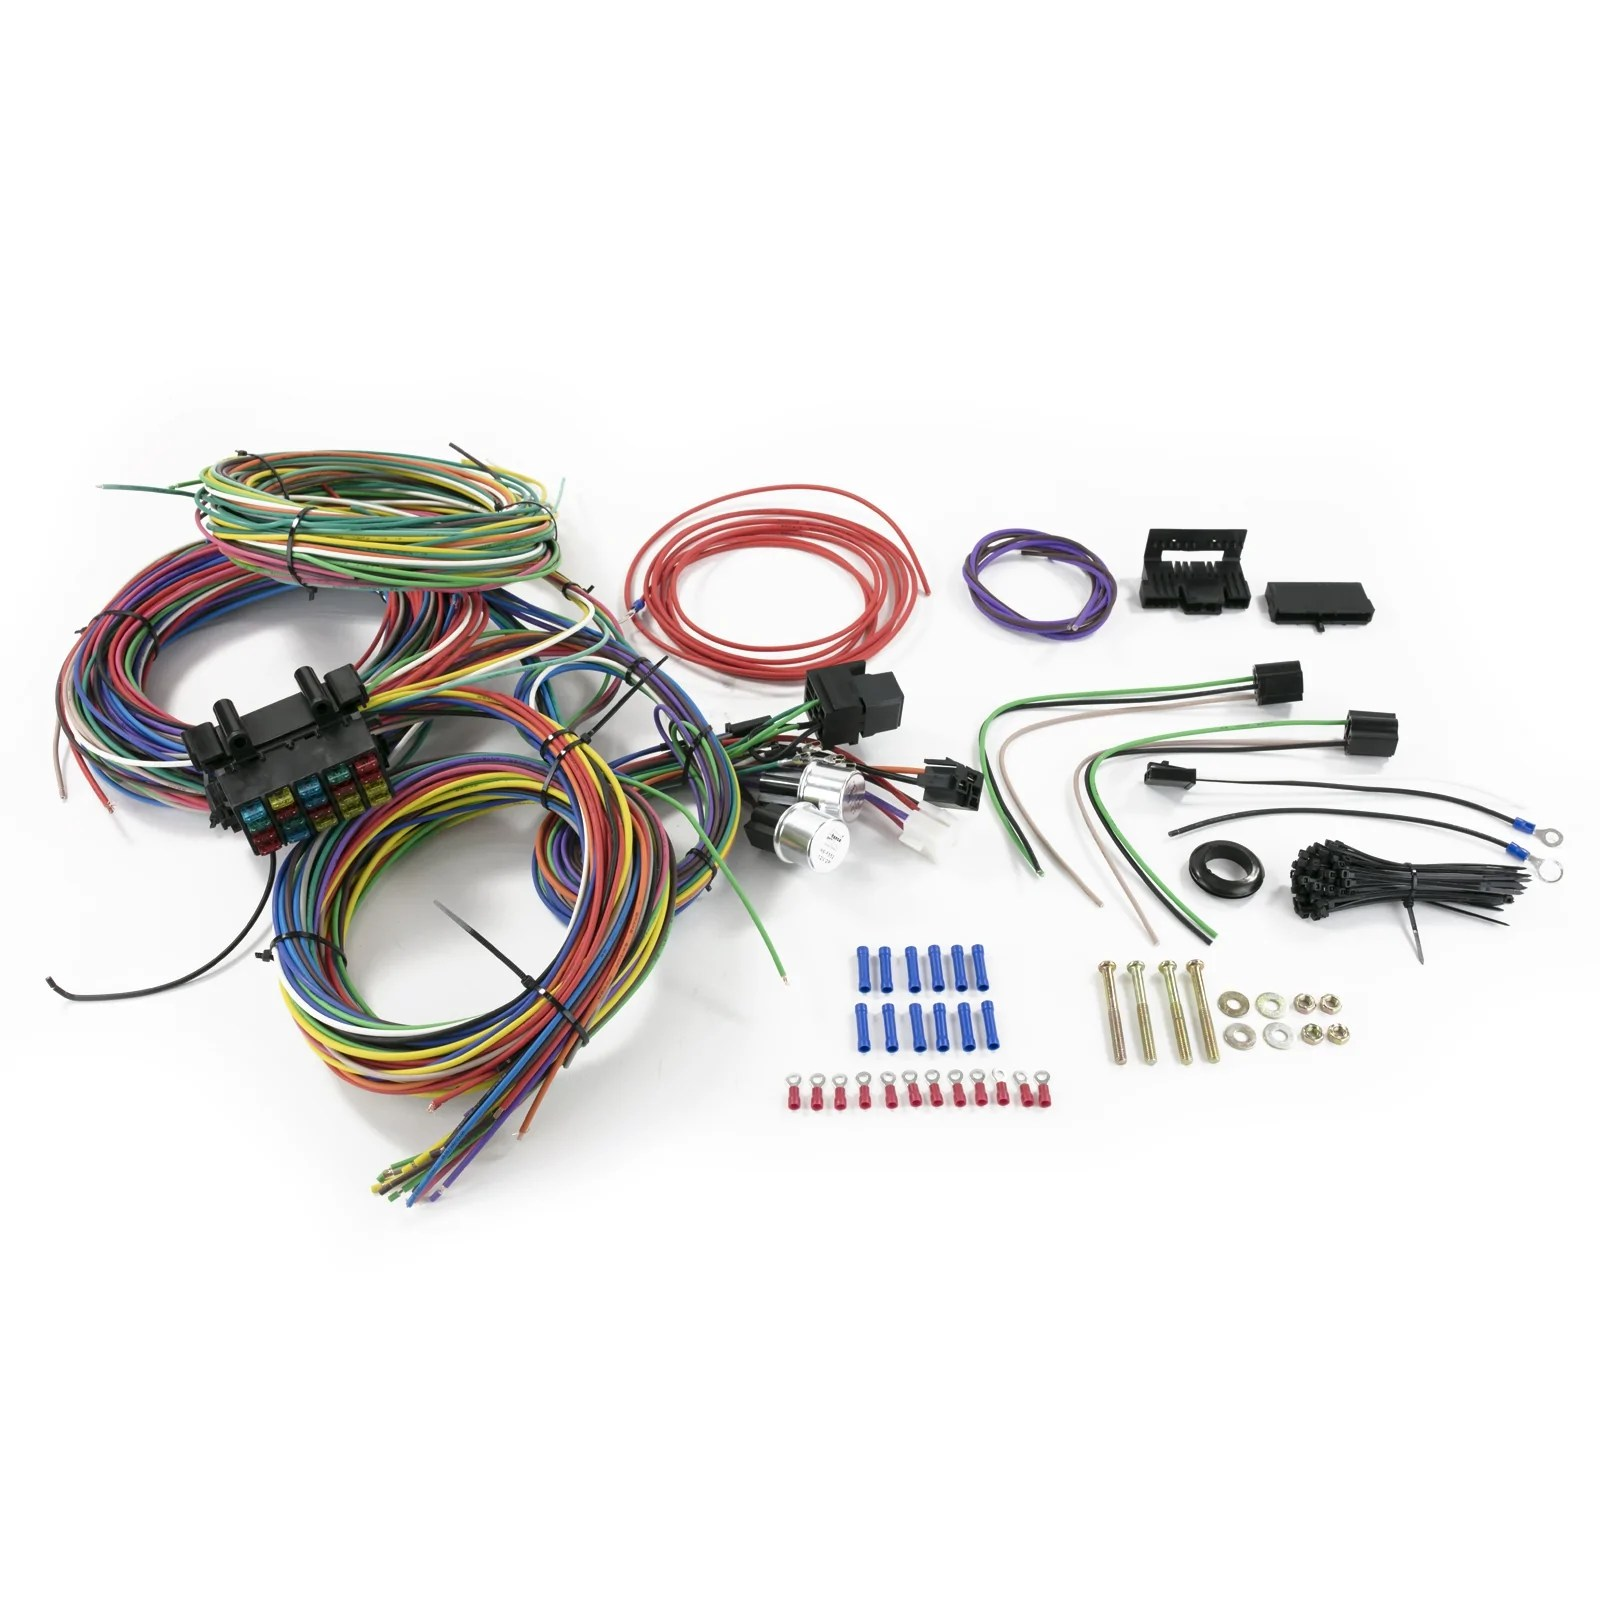 hight resolution of wiring harness universal 240z 260z 280z 510 z car depot 280z wiring harness 280z wiring harness